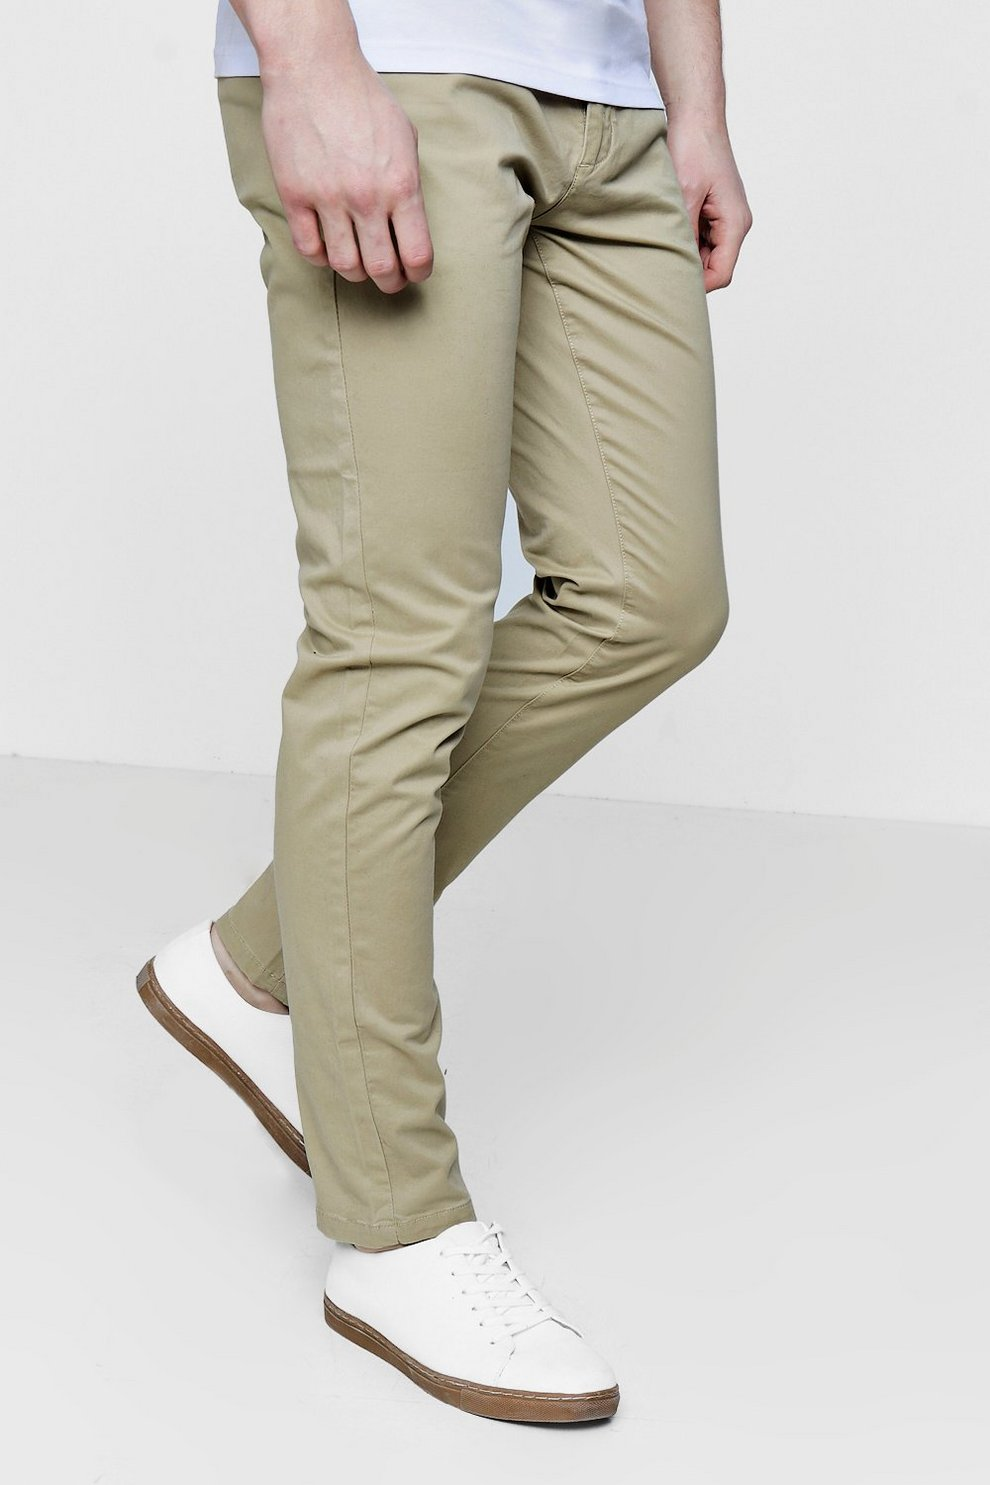 Boohoo Slim Fit Chino With Stretch Free Shipping Low Price Fee Shipping Outlet Low Price Discount Low Price Fee Shipping Discount Free Shipping Clearance Clearance 95pAjtjfo